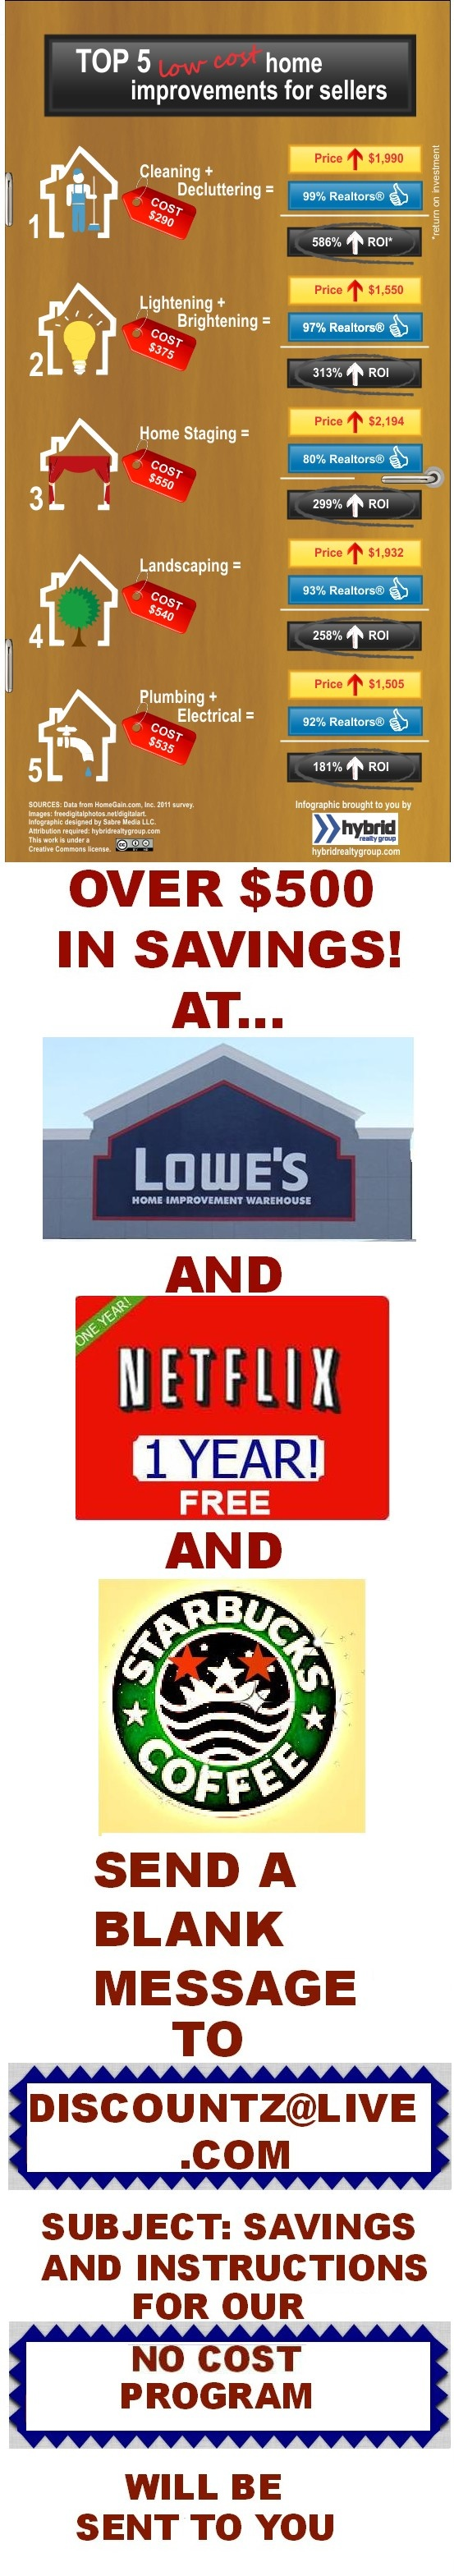 SAVE NOW!  #lowe home improvement  #loews home improvement  #home improvments  #home improvements  #shopper discount  #deep discount  #bargains  #bargain  #movies netflix  #netflix free  #netflix trial  #netflix dvd  #netflix plans  #free netflix trial  #netflix on tv  #netflix movies  #free netflix  #netflix queue  #netflix tv  #netflix xbox  #www.netflix  #netflix online  #netflix sign in  #netflix new releases  #netflix movies list  #netflix box  #netflix streaming  #netflix free trial